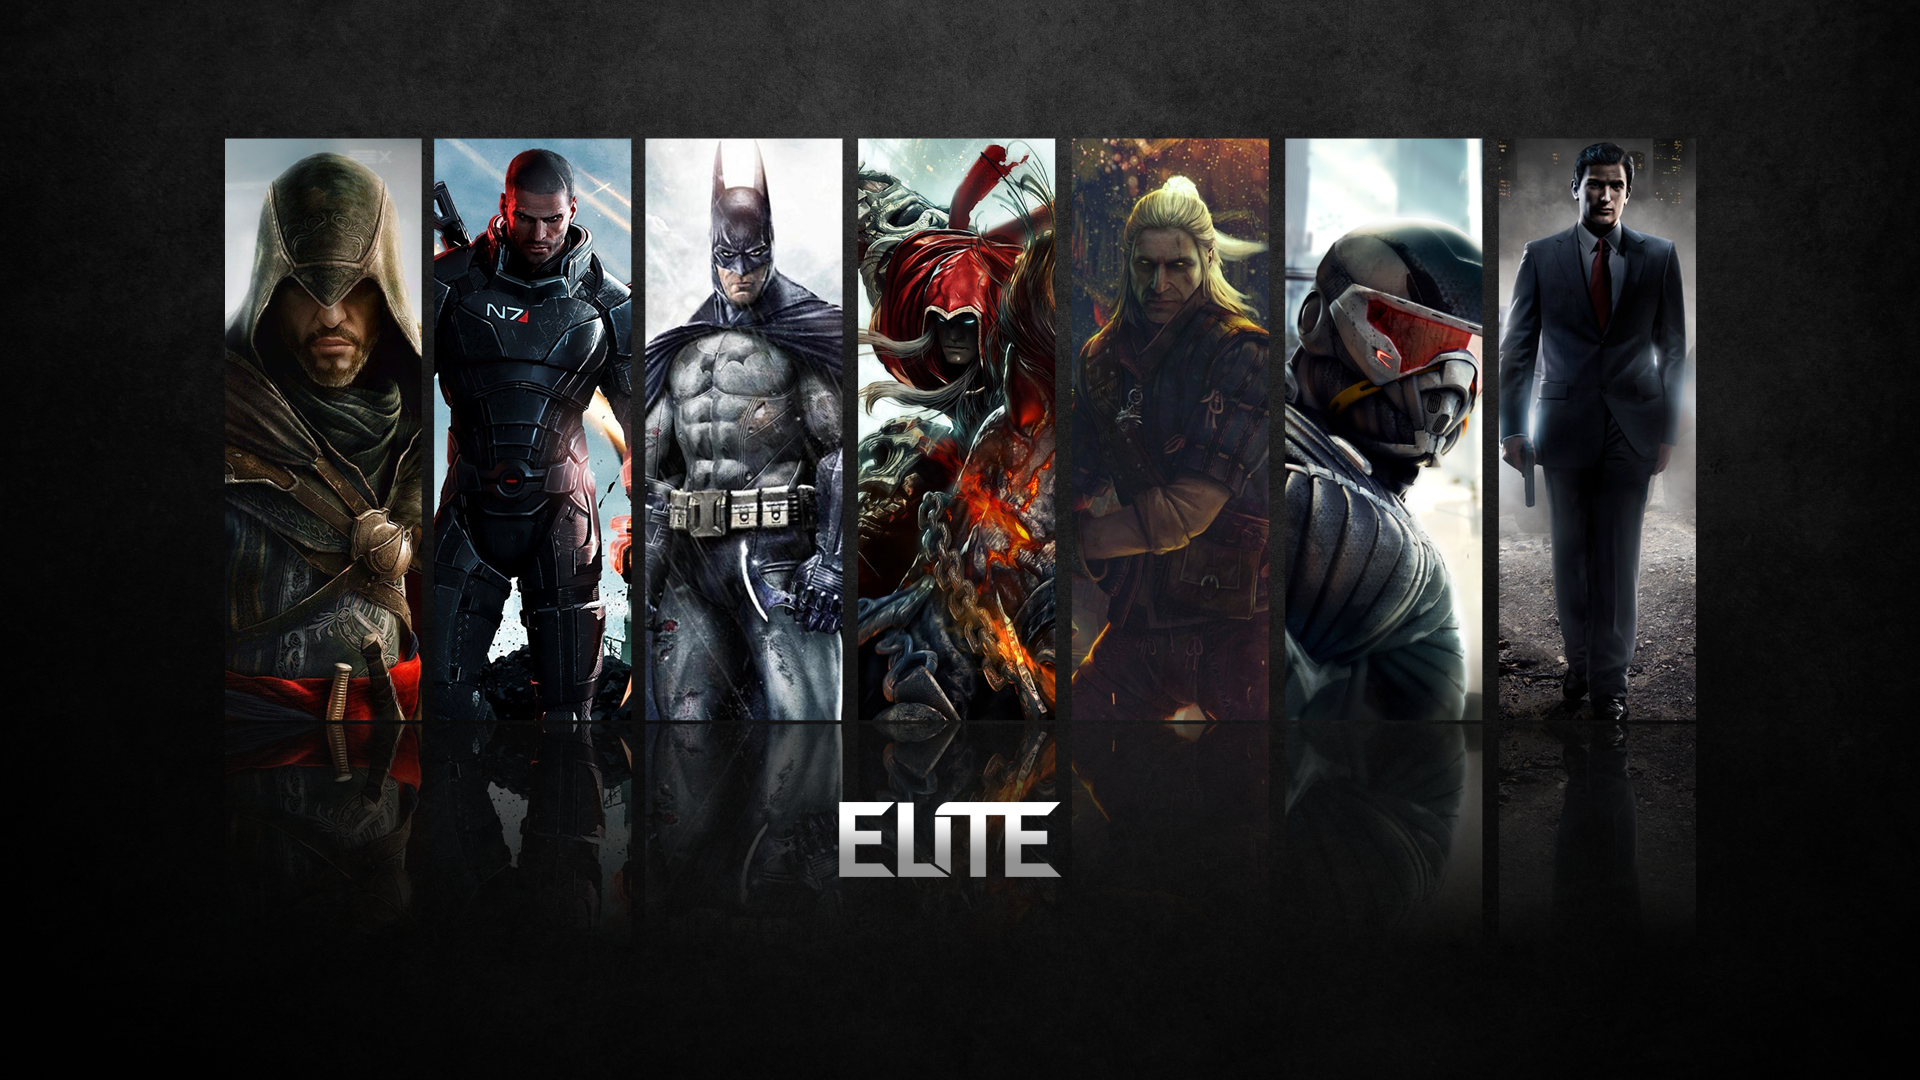 popular video game characters wallpaperVideo game characters Wallpaper 1920x1080